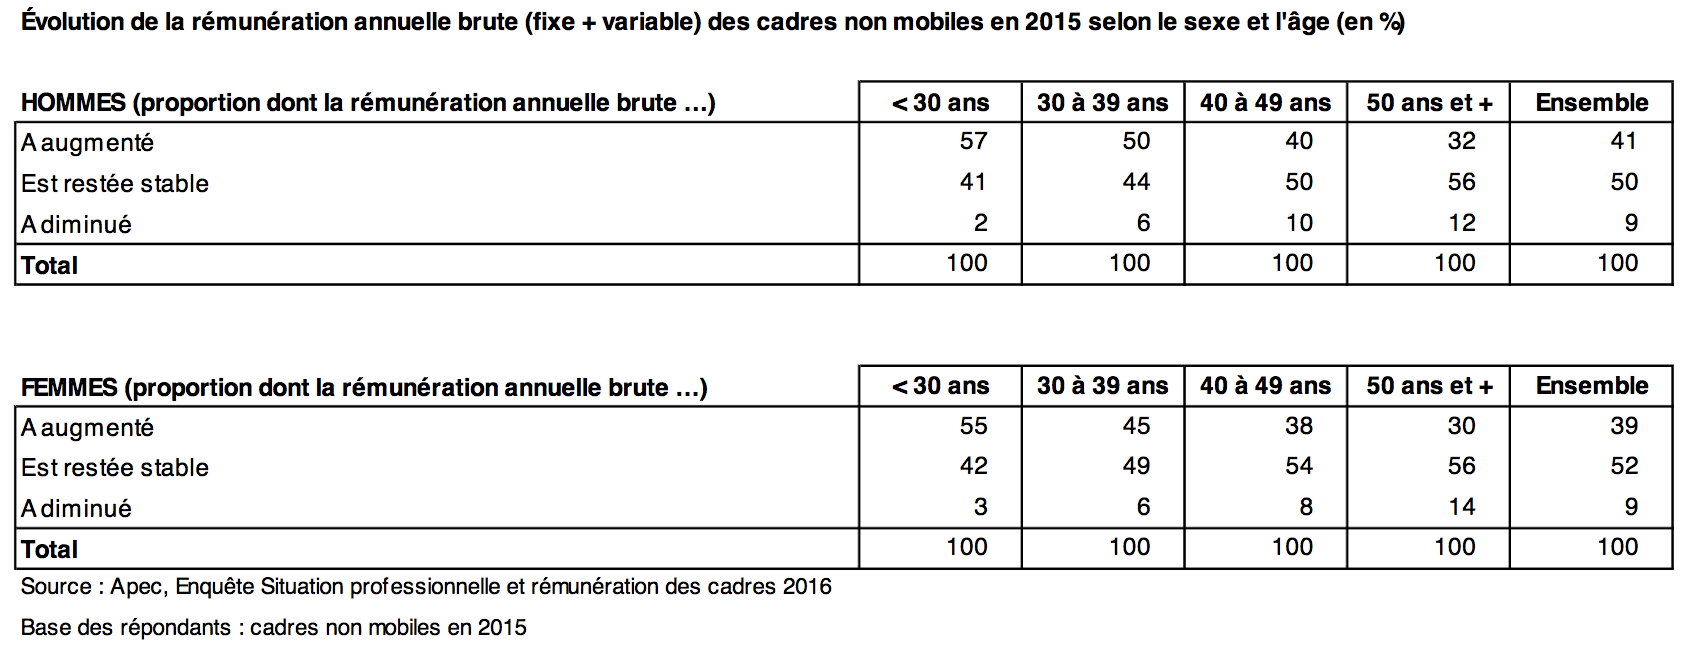 evolution-remuneration-cadres-en-france